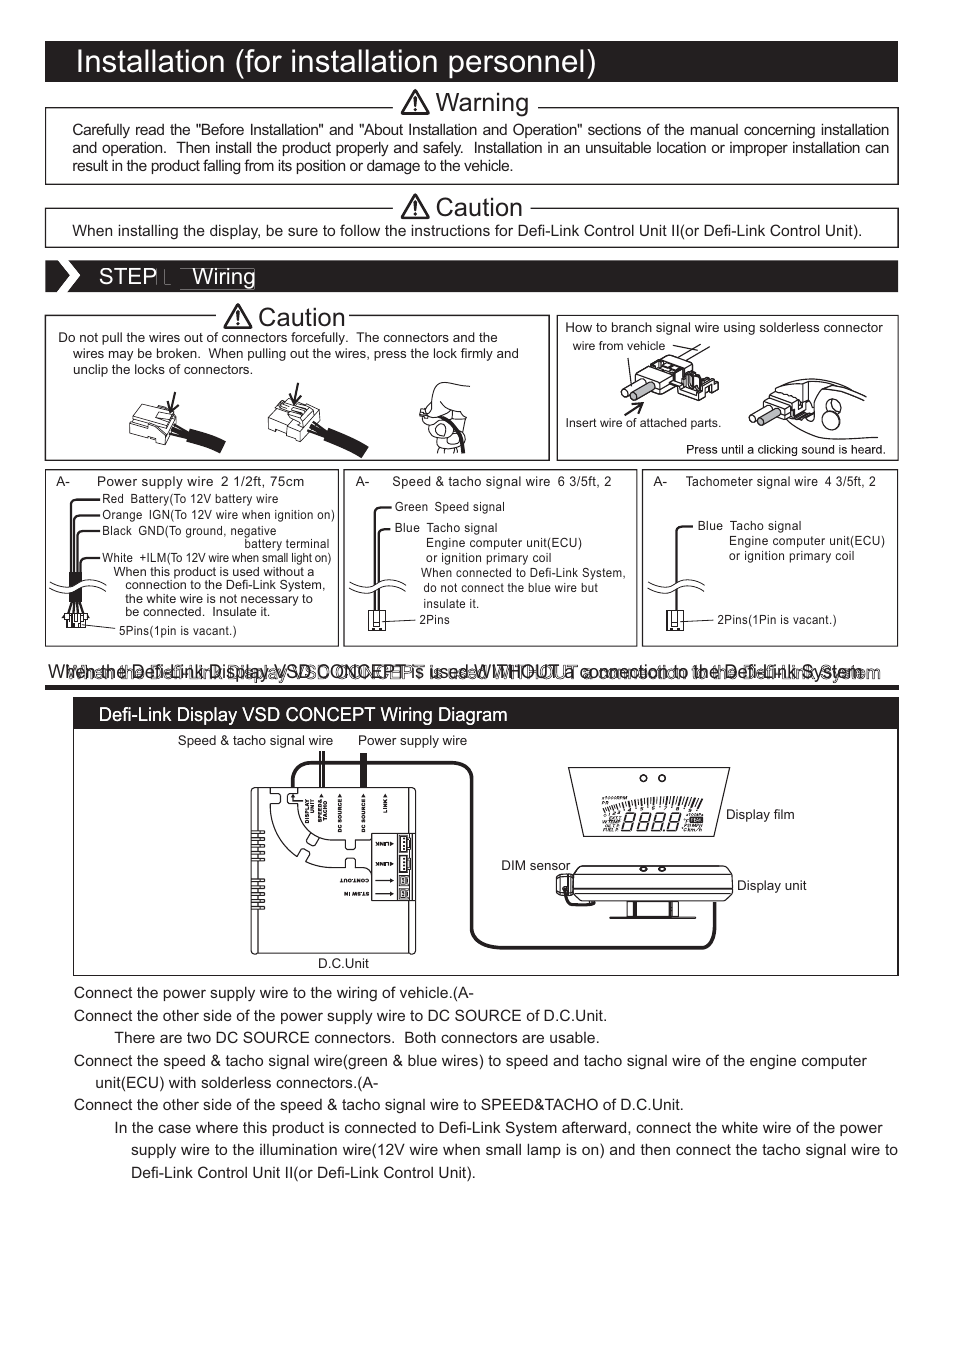 defi link vsd concept page3 installation (for installation personnel), warning, caution defi defi gauge wiring diagram at readyjetset.co